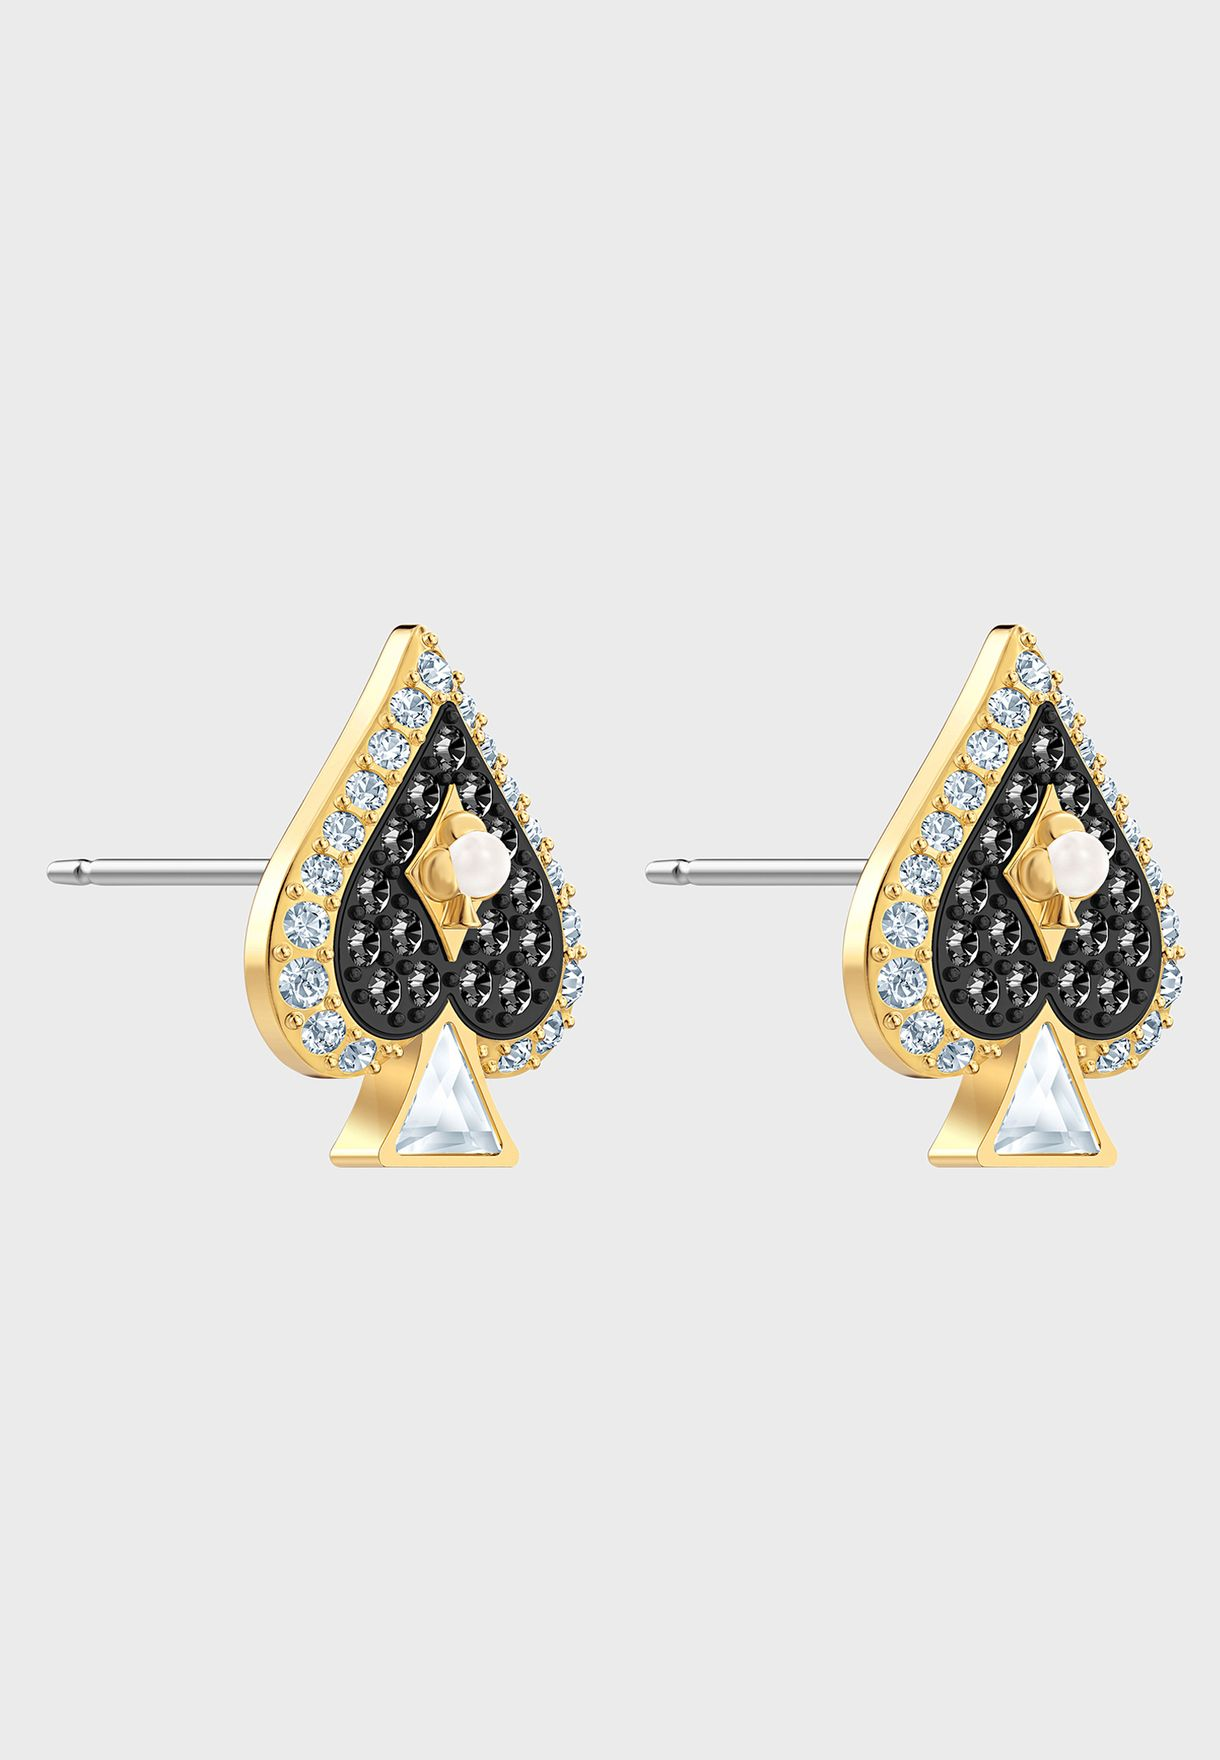 Tarot Magic Spade Stud Earrings